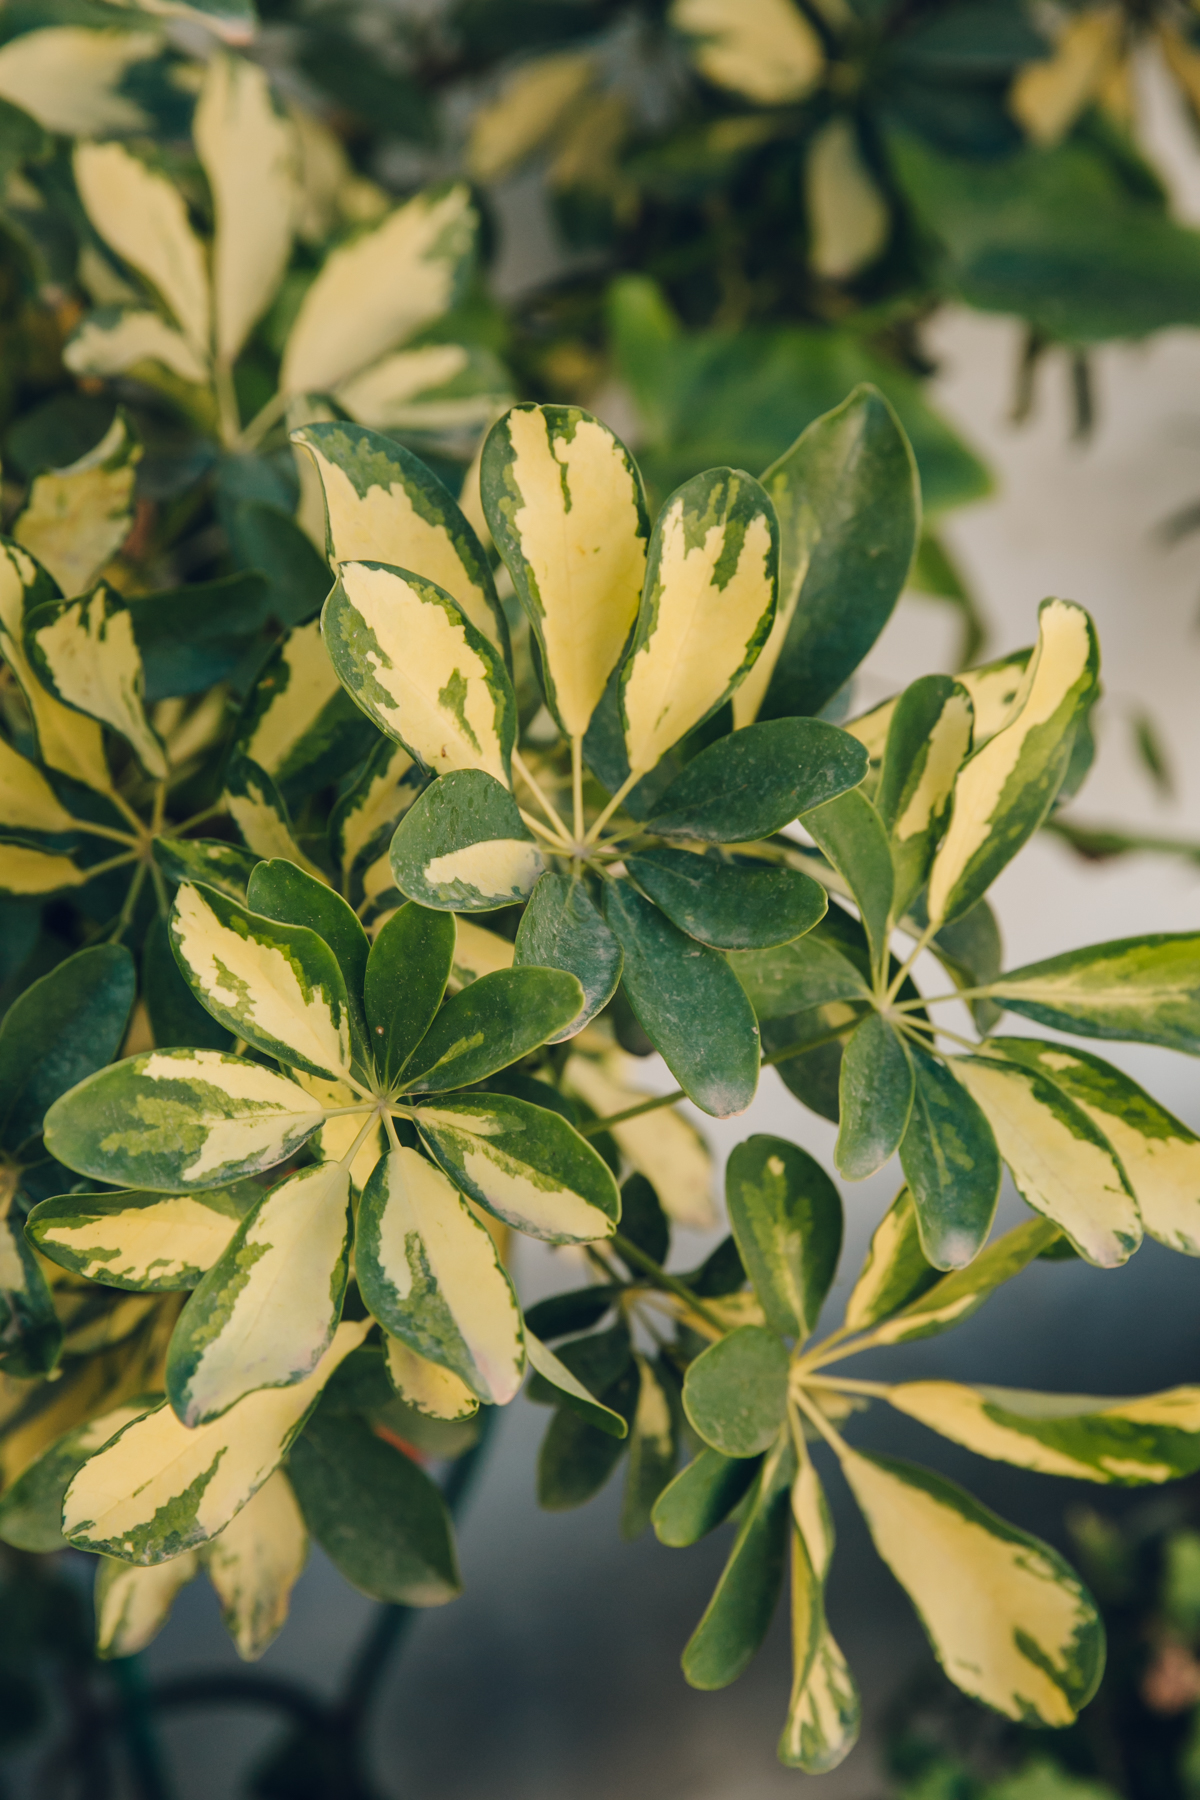 Schefflera in the plant-filled patios of Andalusia, Spain.